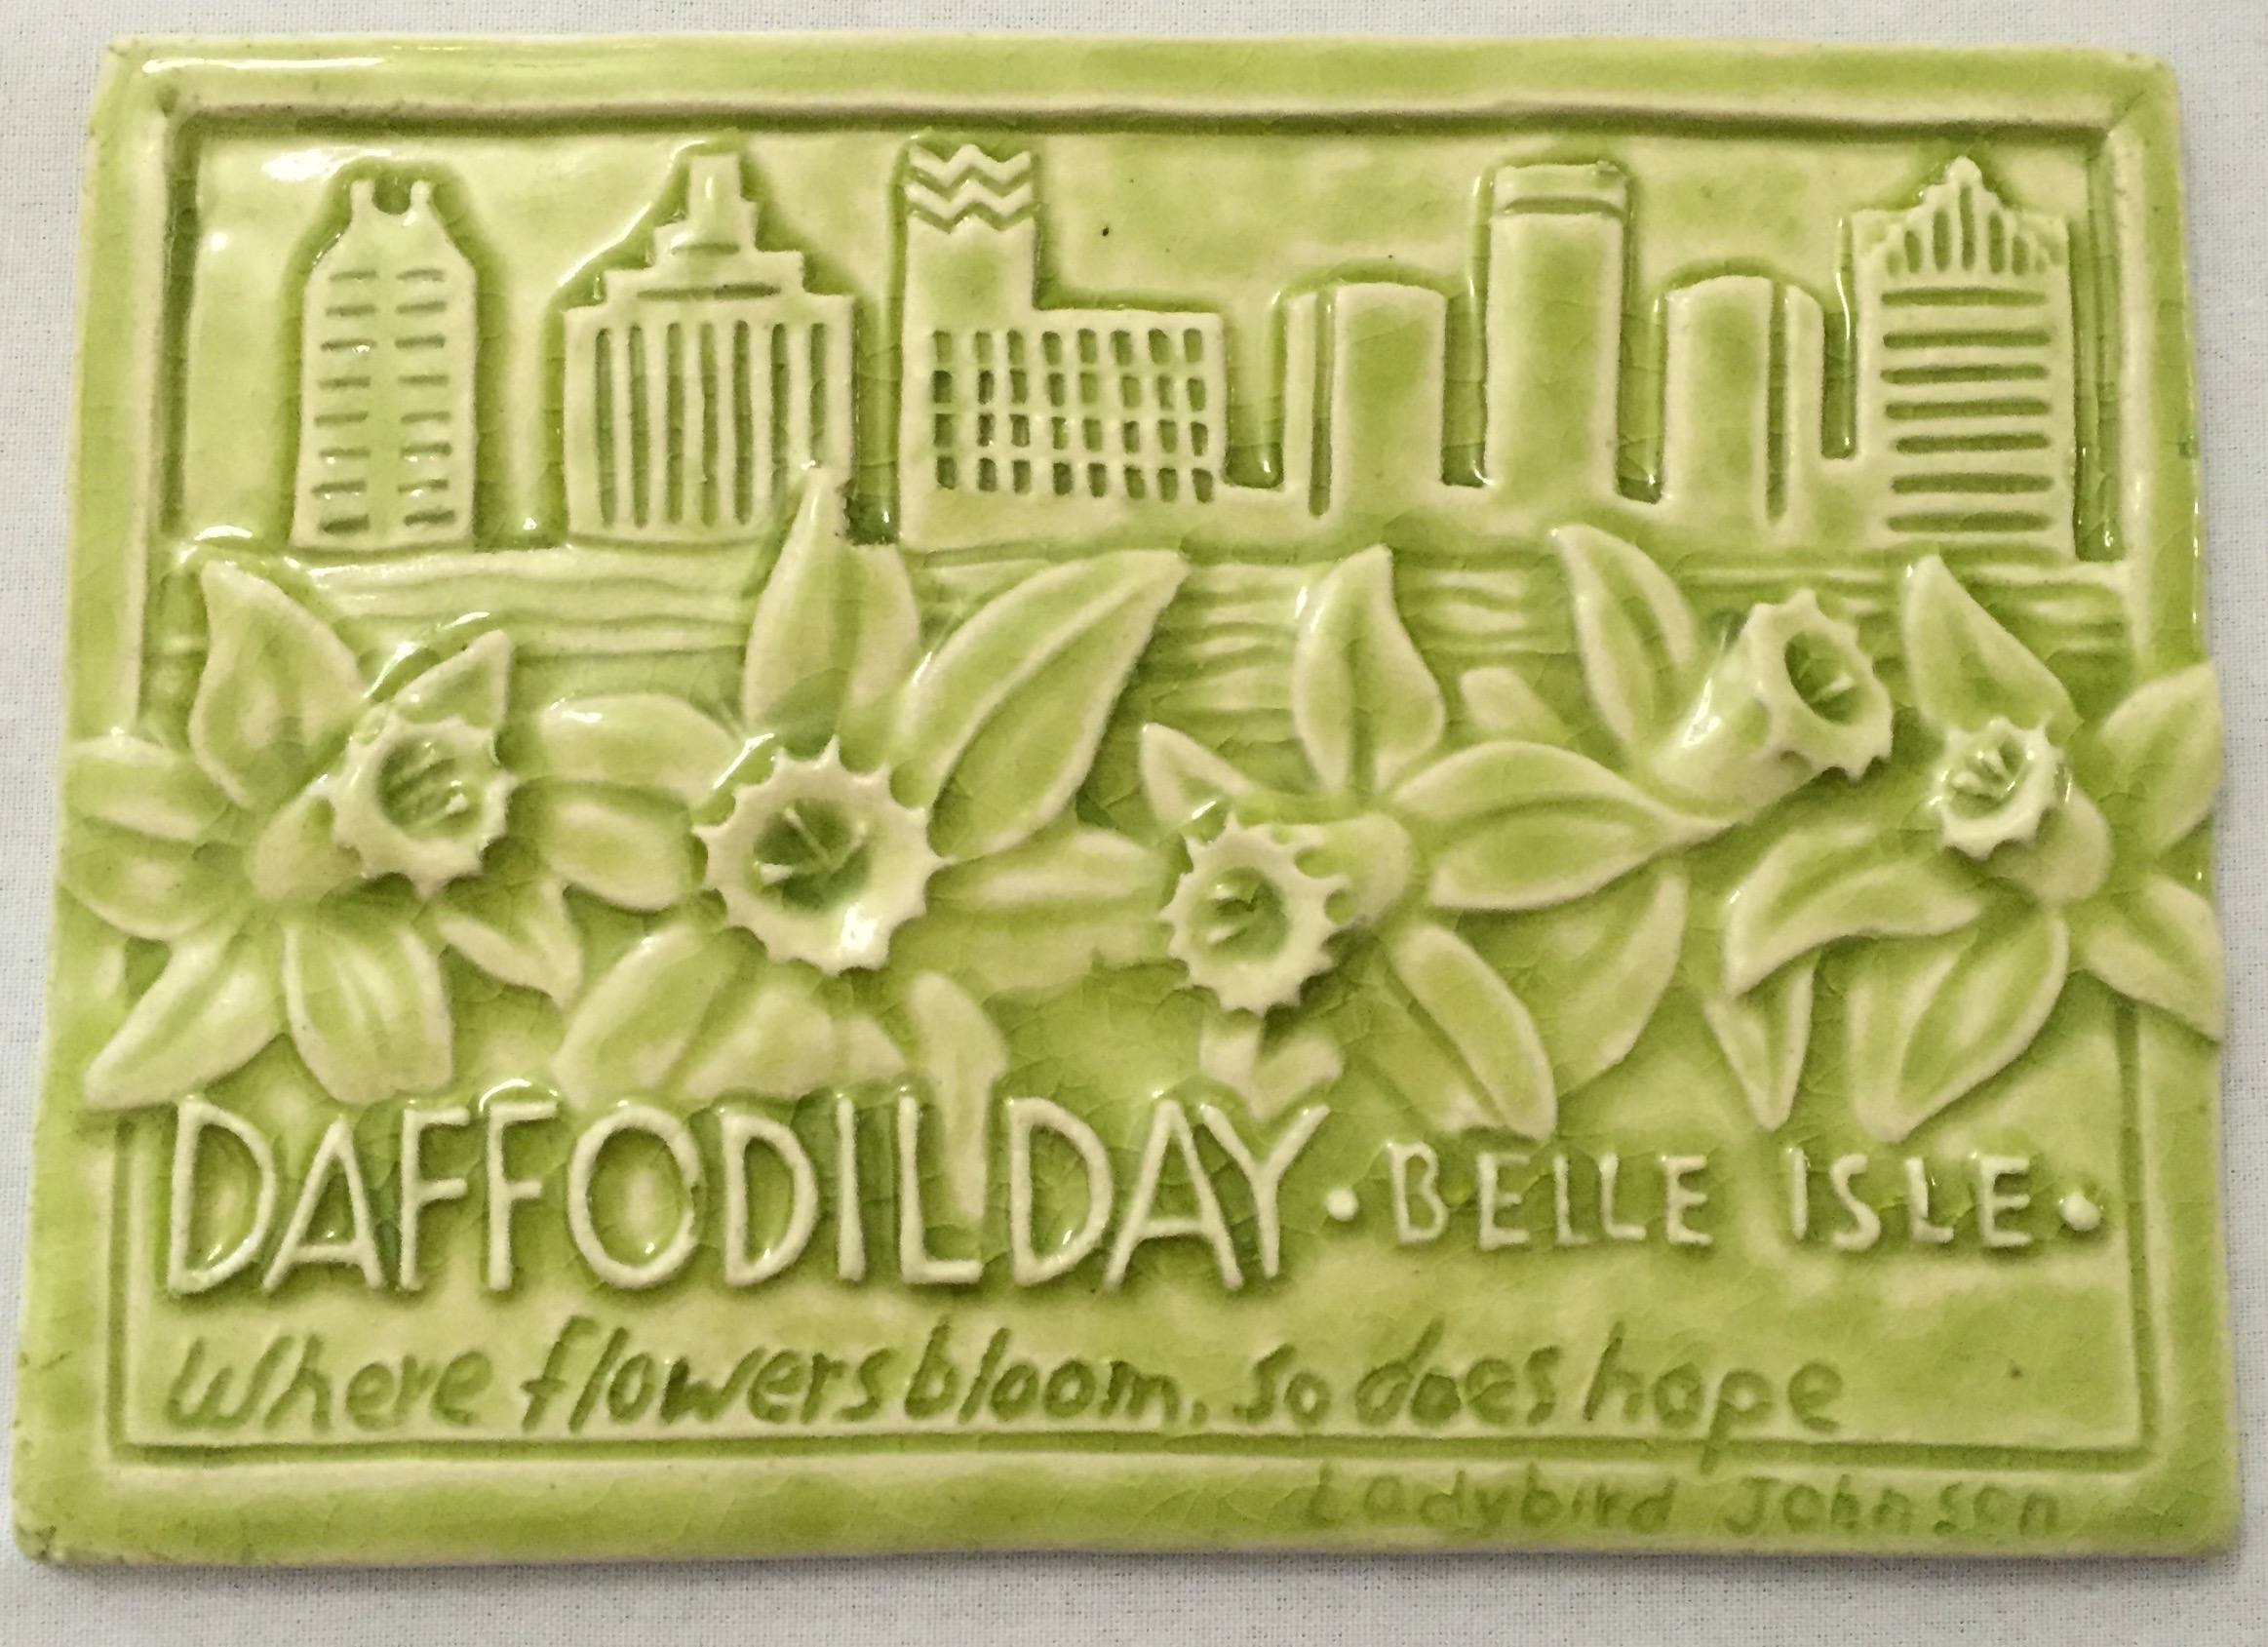 A Daffodil Day tile designed especially for us by Rick Pruckler owner of Whistling Frog Tile.